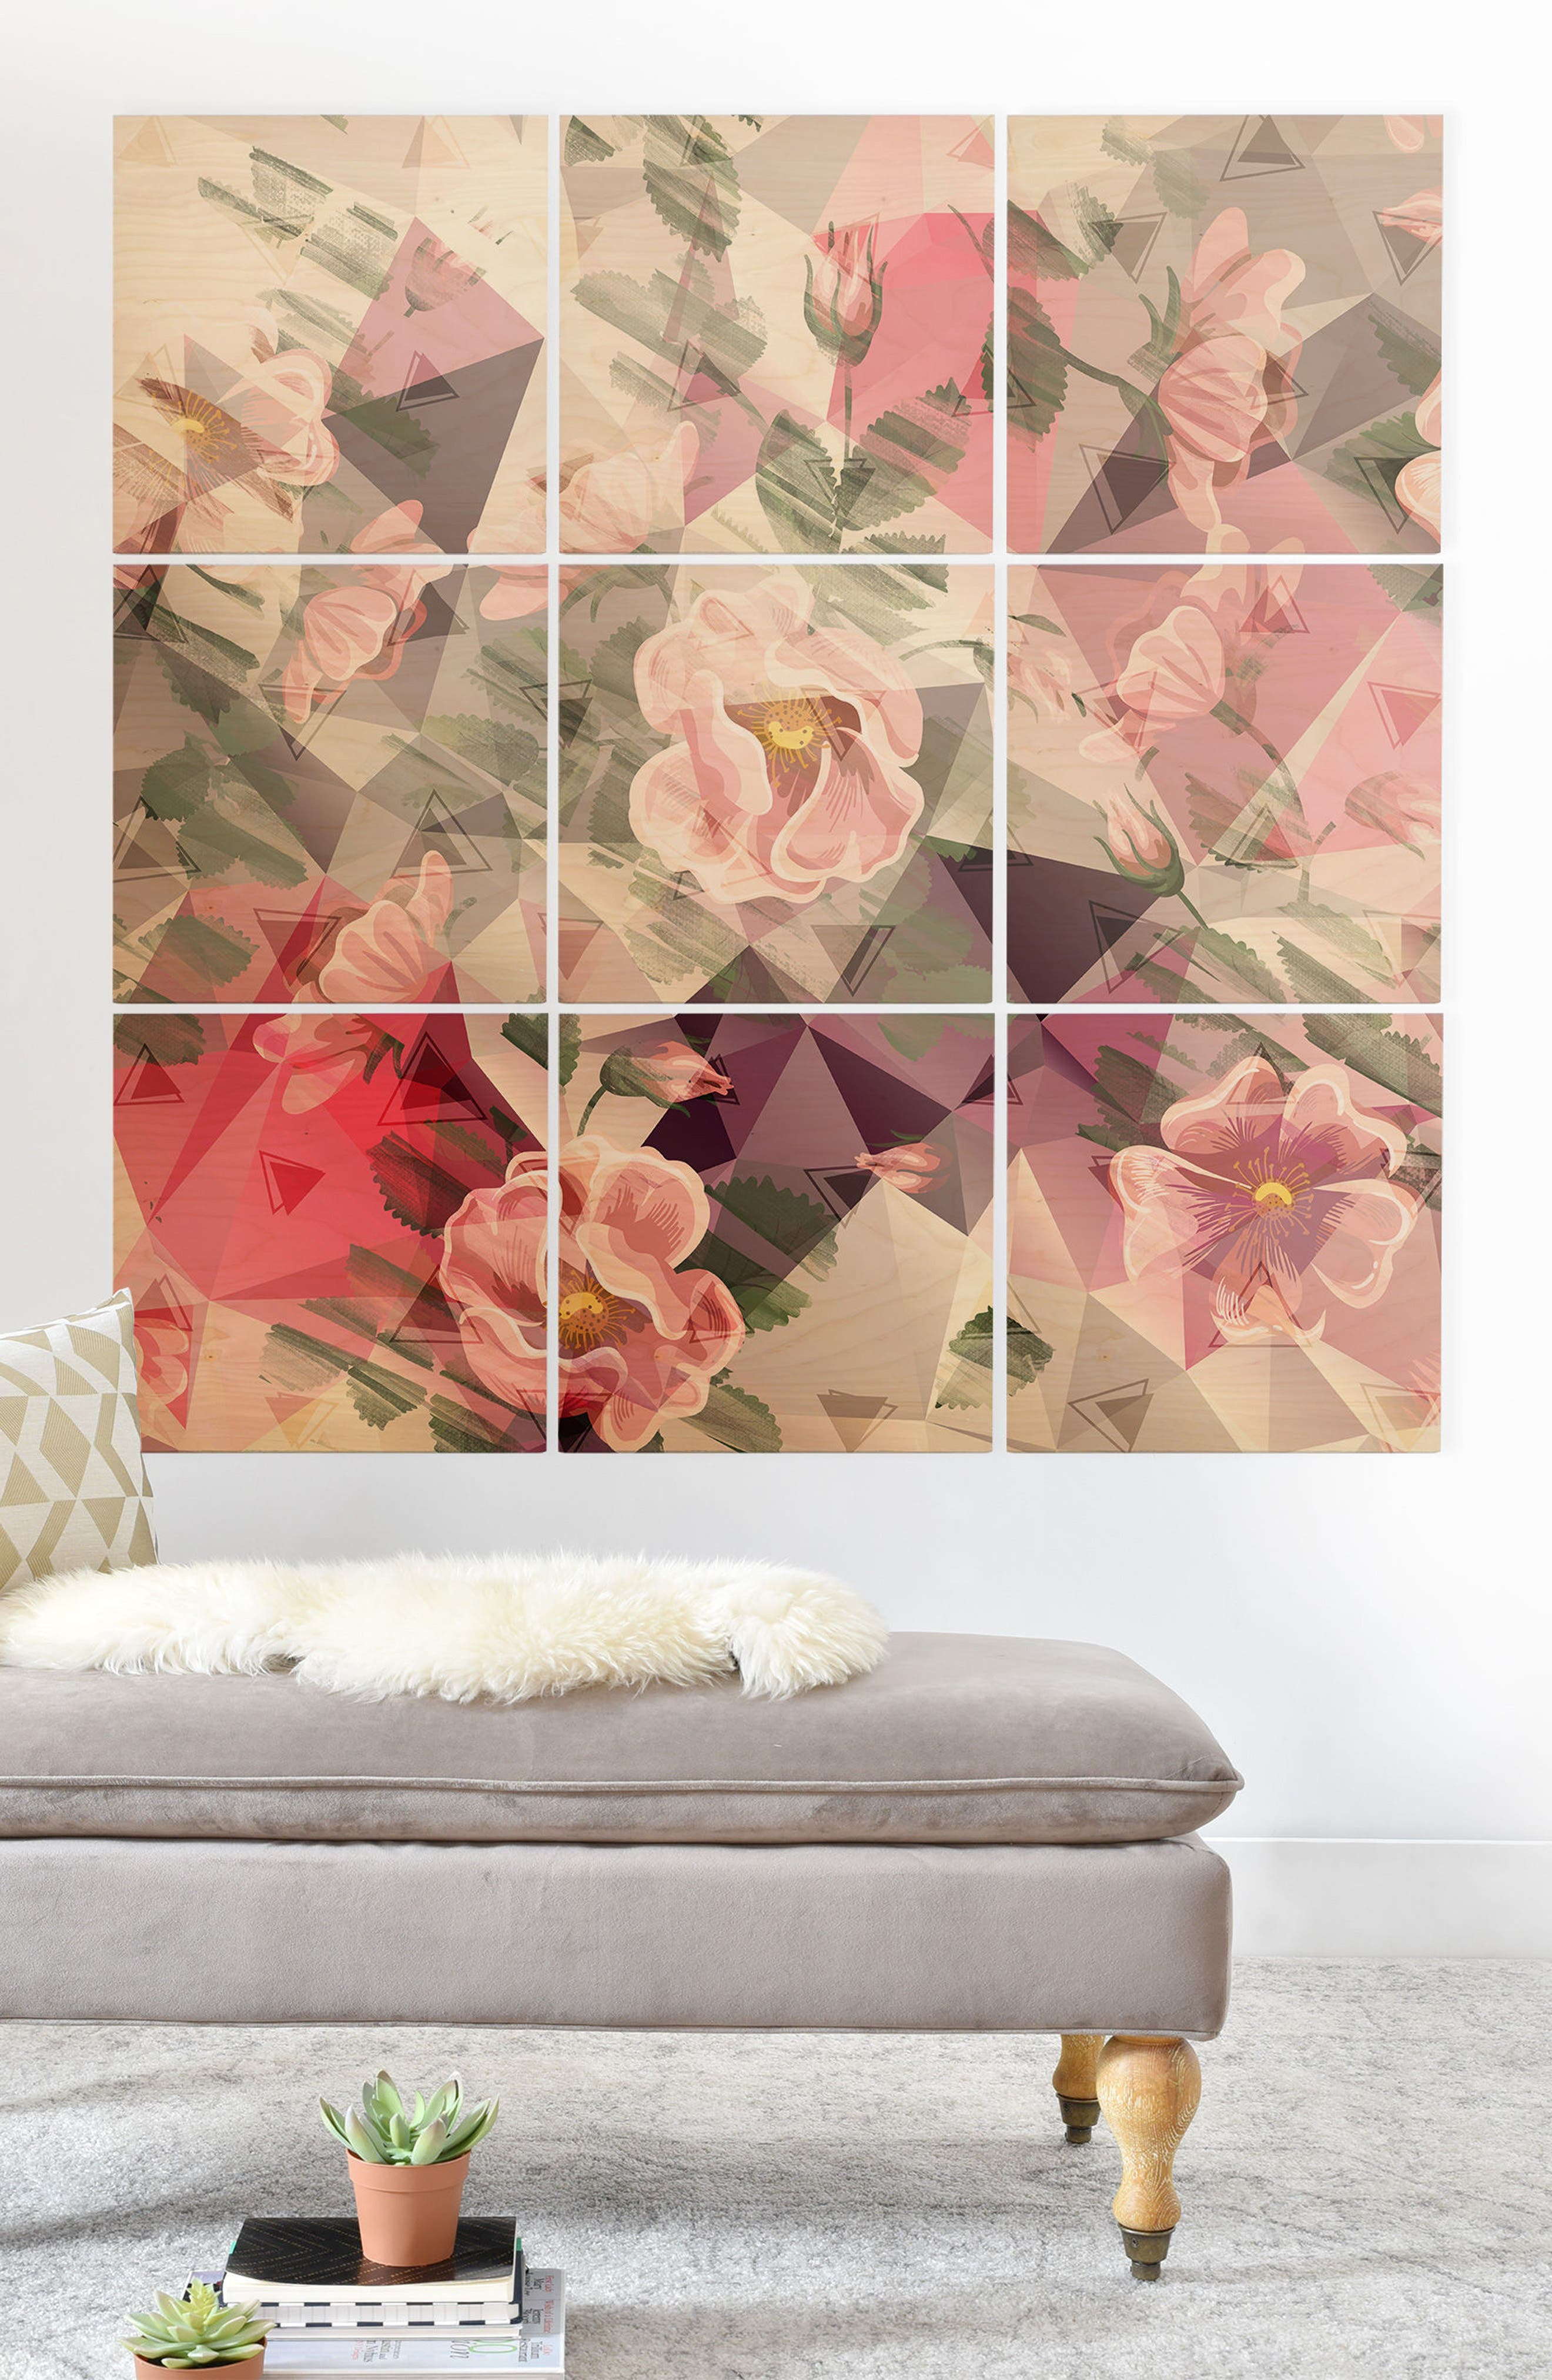 Floral 9-Piece Wood Wall Mural,                             Alternate thumbnail 2, color,                             Pink